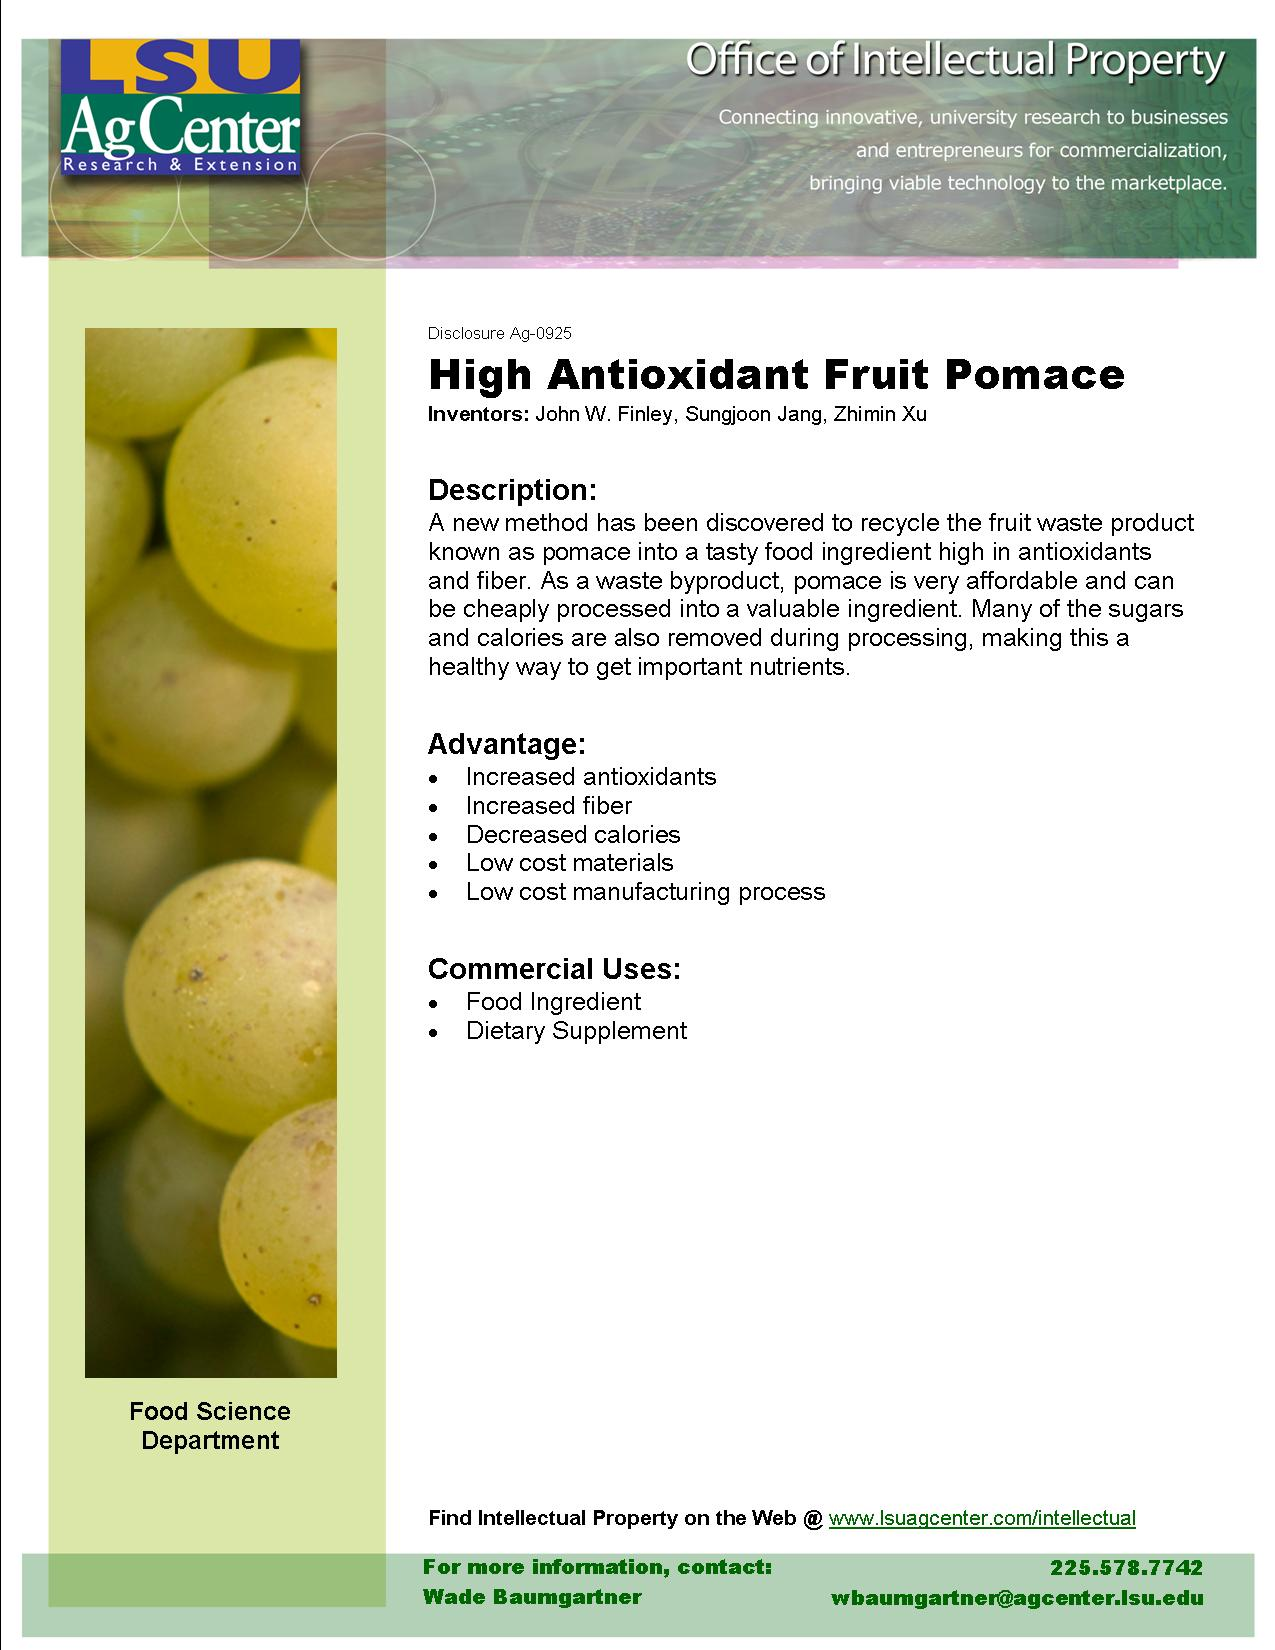 High Antioxidant Fruit Pomace